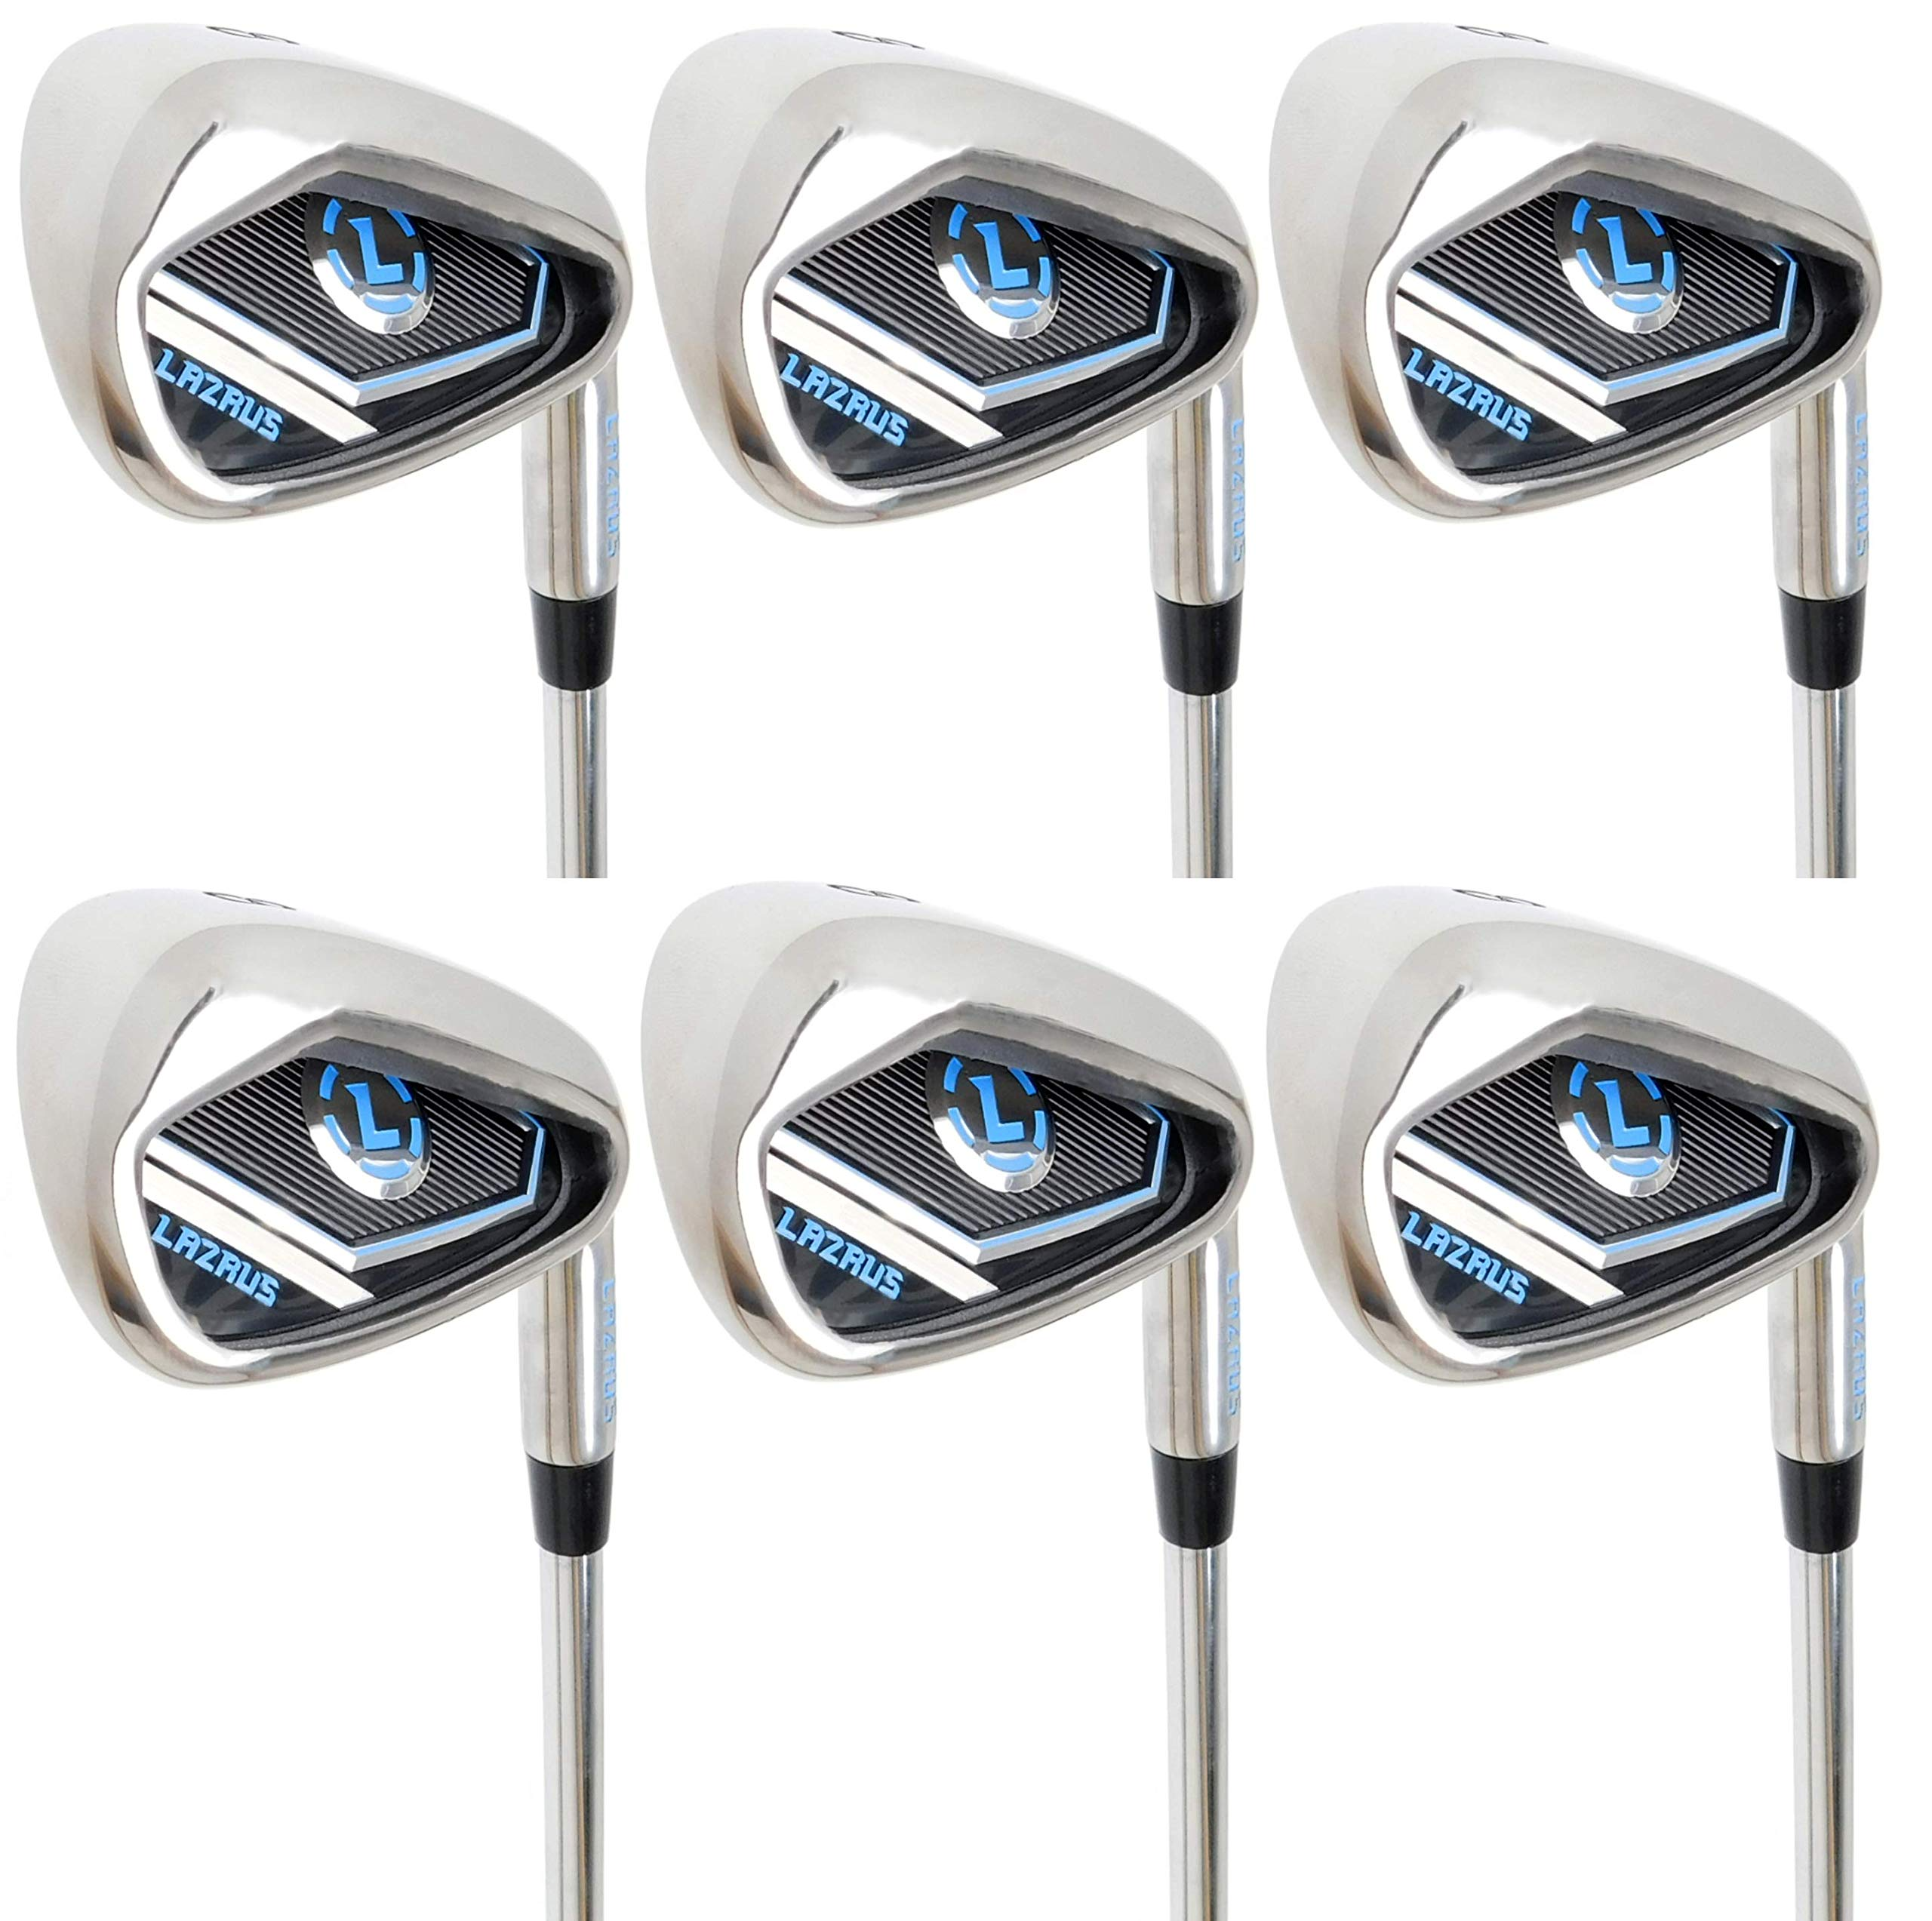 LAZRUS Premium Golf Irons Set for Men (4,5,6,7,8,9) Right Hand Steel Shaft Regular Flex Golf Clubs - Best Golf Iron Set - Great Golf Gift for Beginner Or Intermediate (Silver) by LAZRUS GOLF